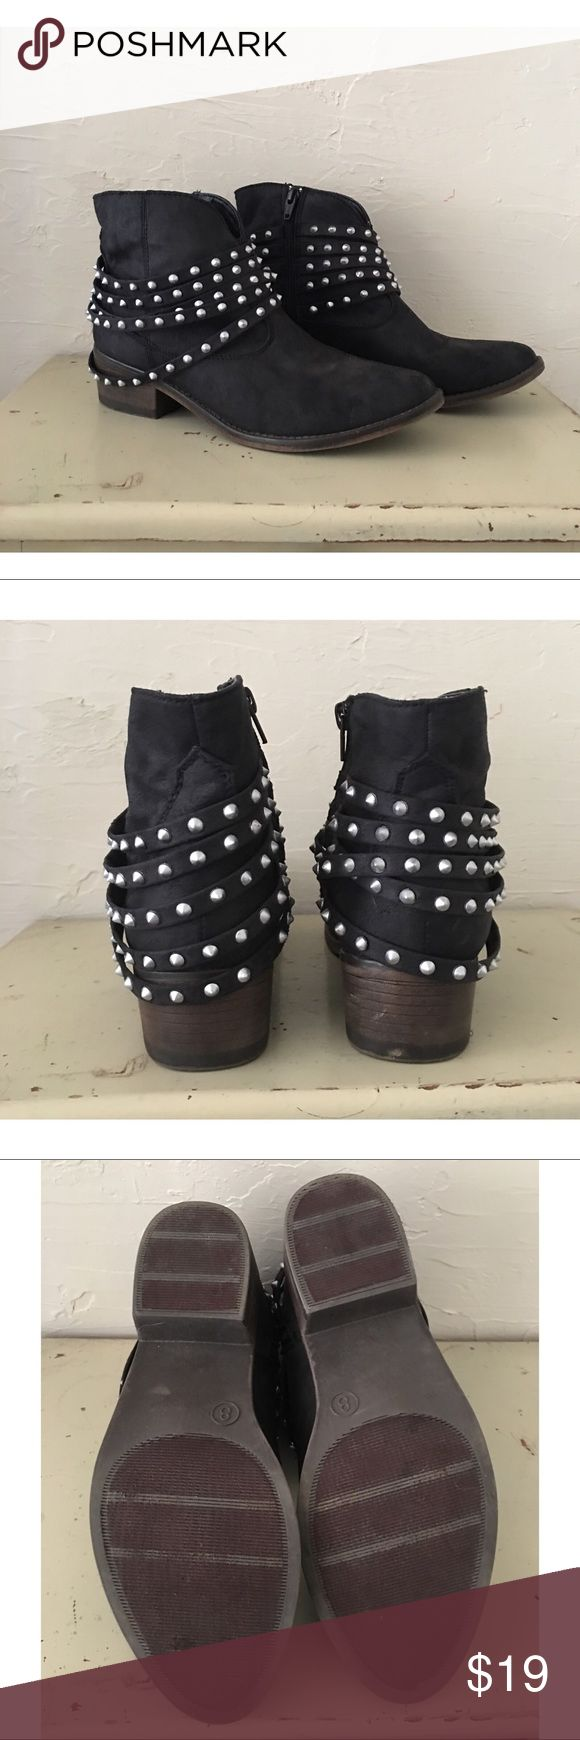 Mossimo Black Studded Ankle Boots Super cute black Ankle Boots. Stud detail, side zip. Only worn once, almost new condition as you can see from the picture of the bottoms. Please feel free to ask any questions. Mossimo Supply Co. Shoes Ankle Boots & Booties